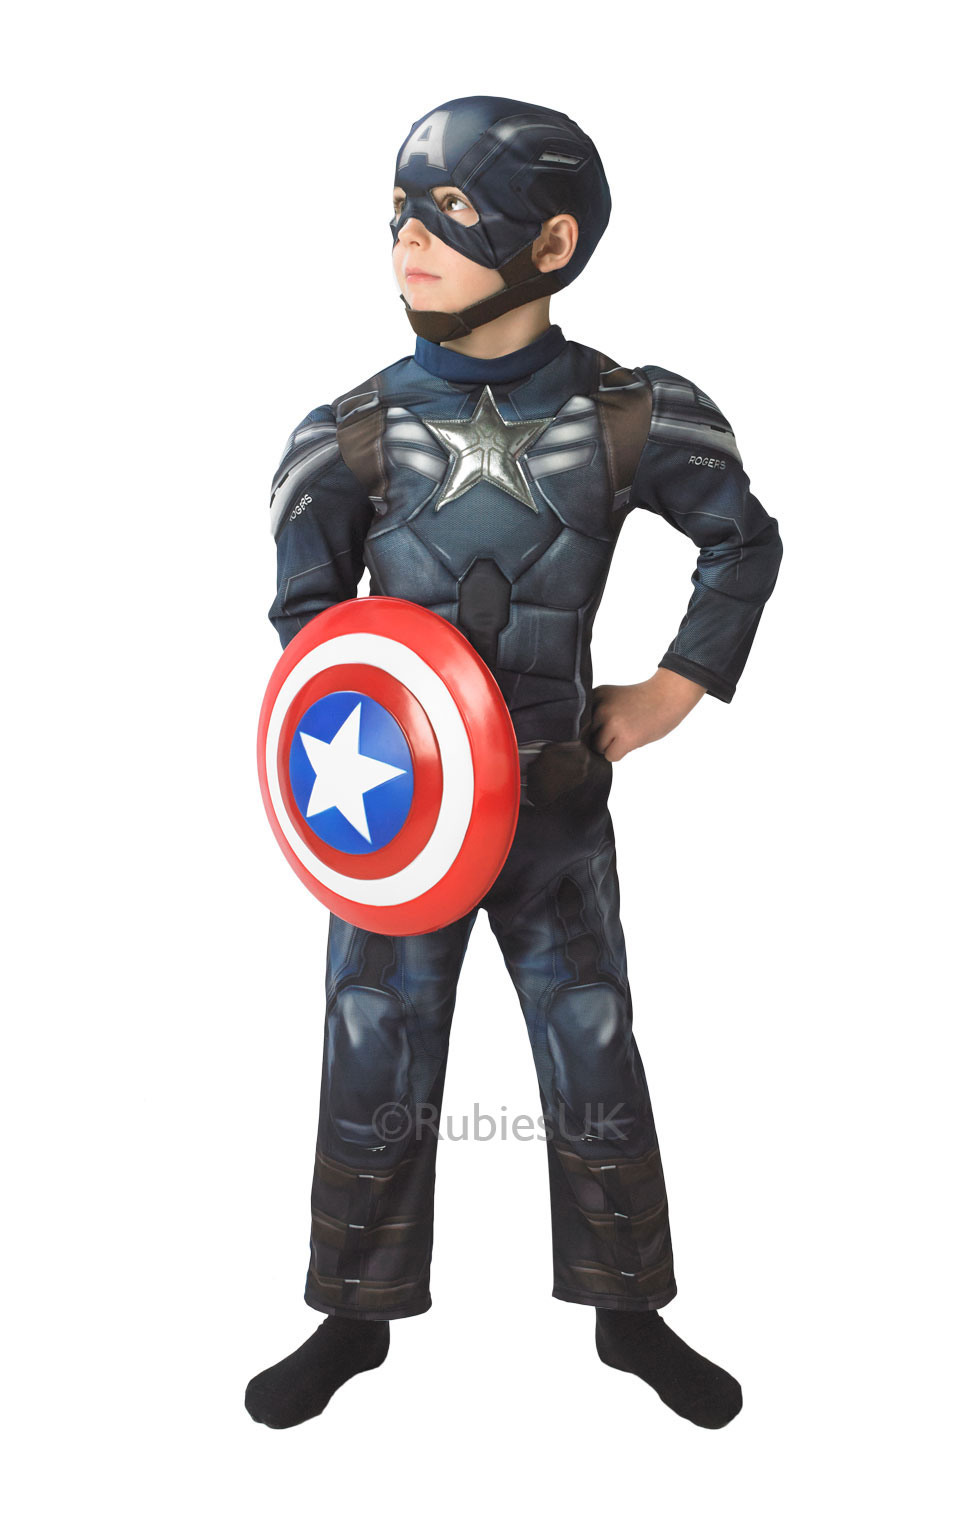 winter soldier captain america 2 costume. Black Bedroom Furniture Sets. Home Design Ideas